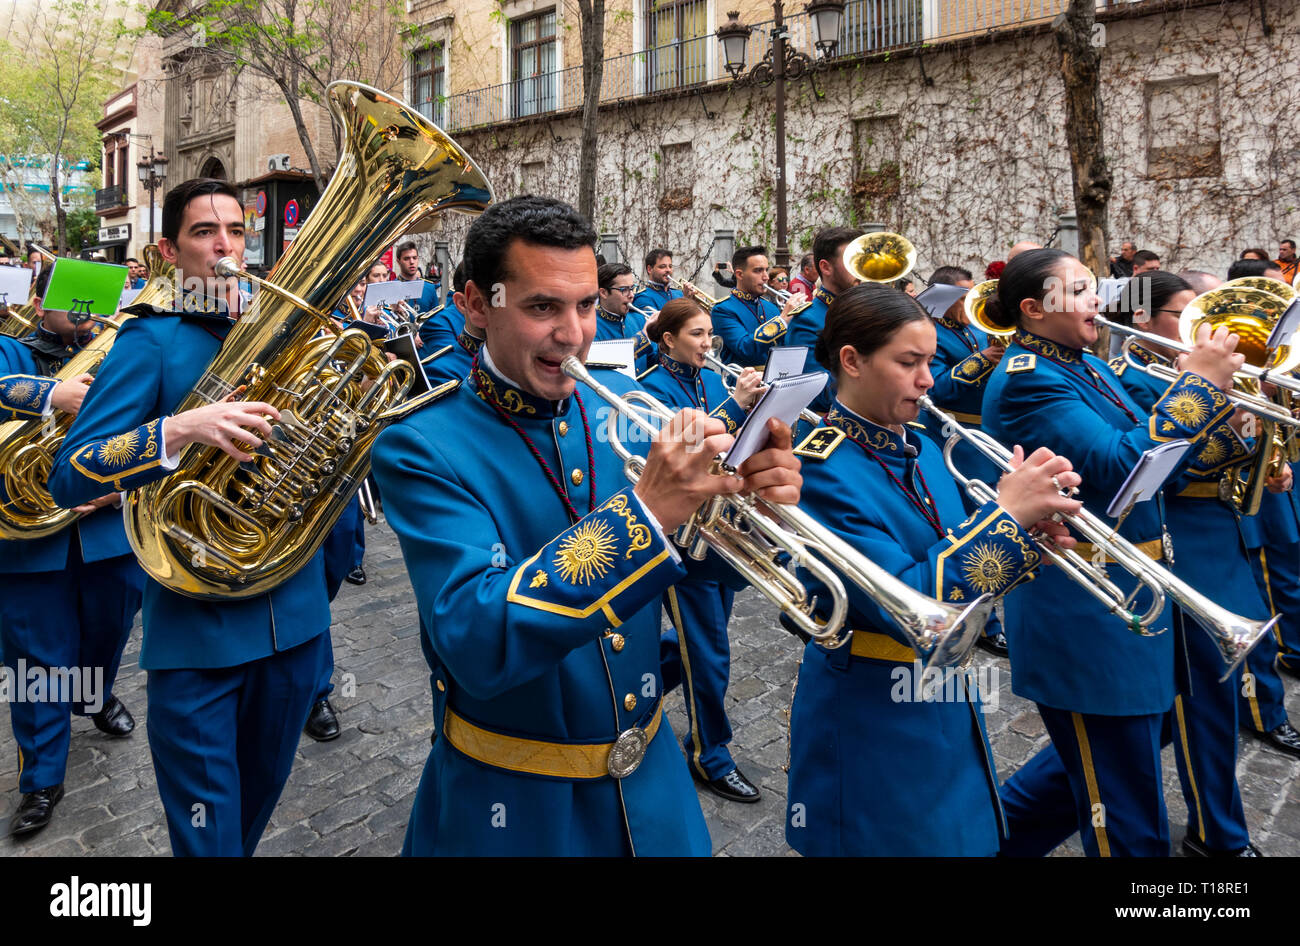 a-marching-band-on-a-street-in-seville-s